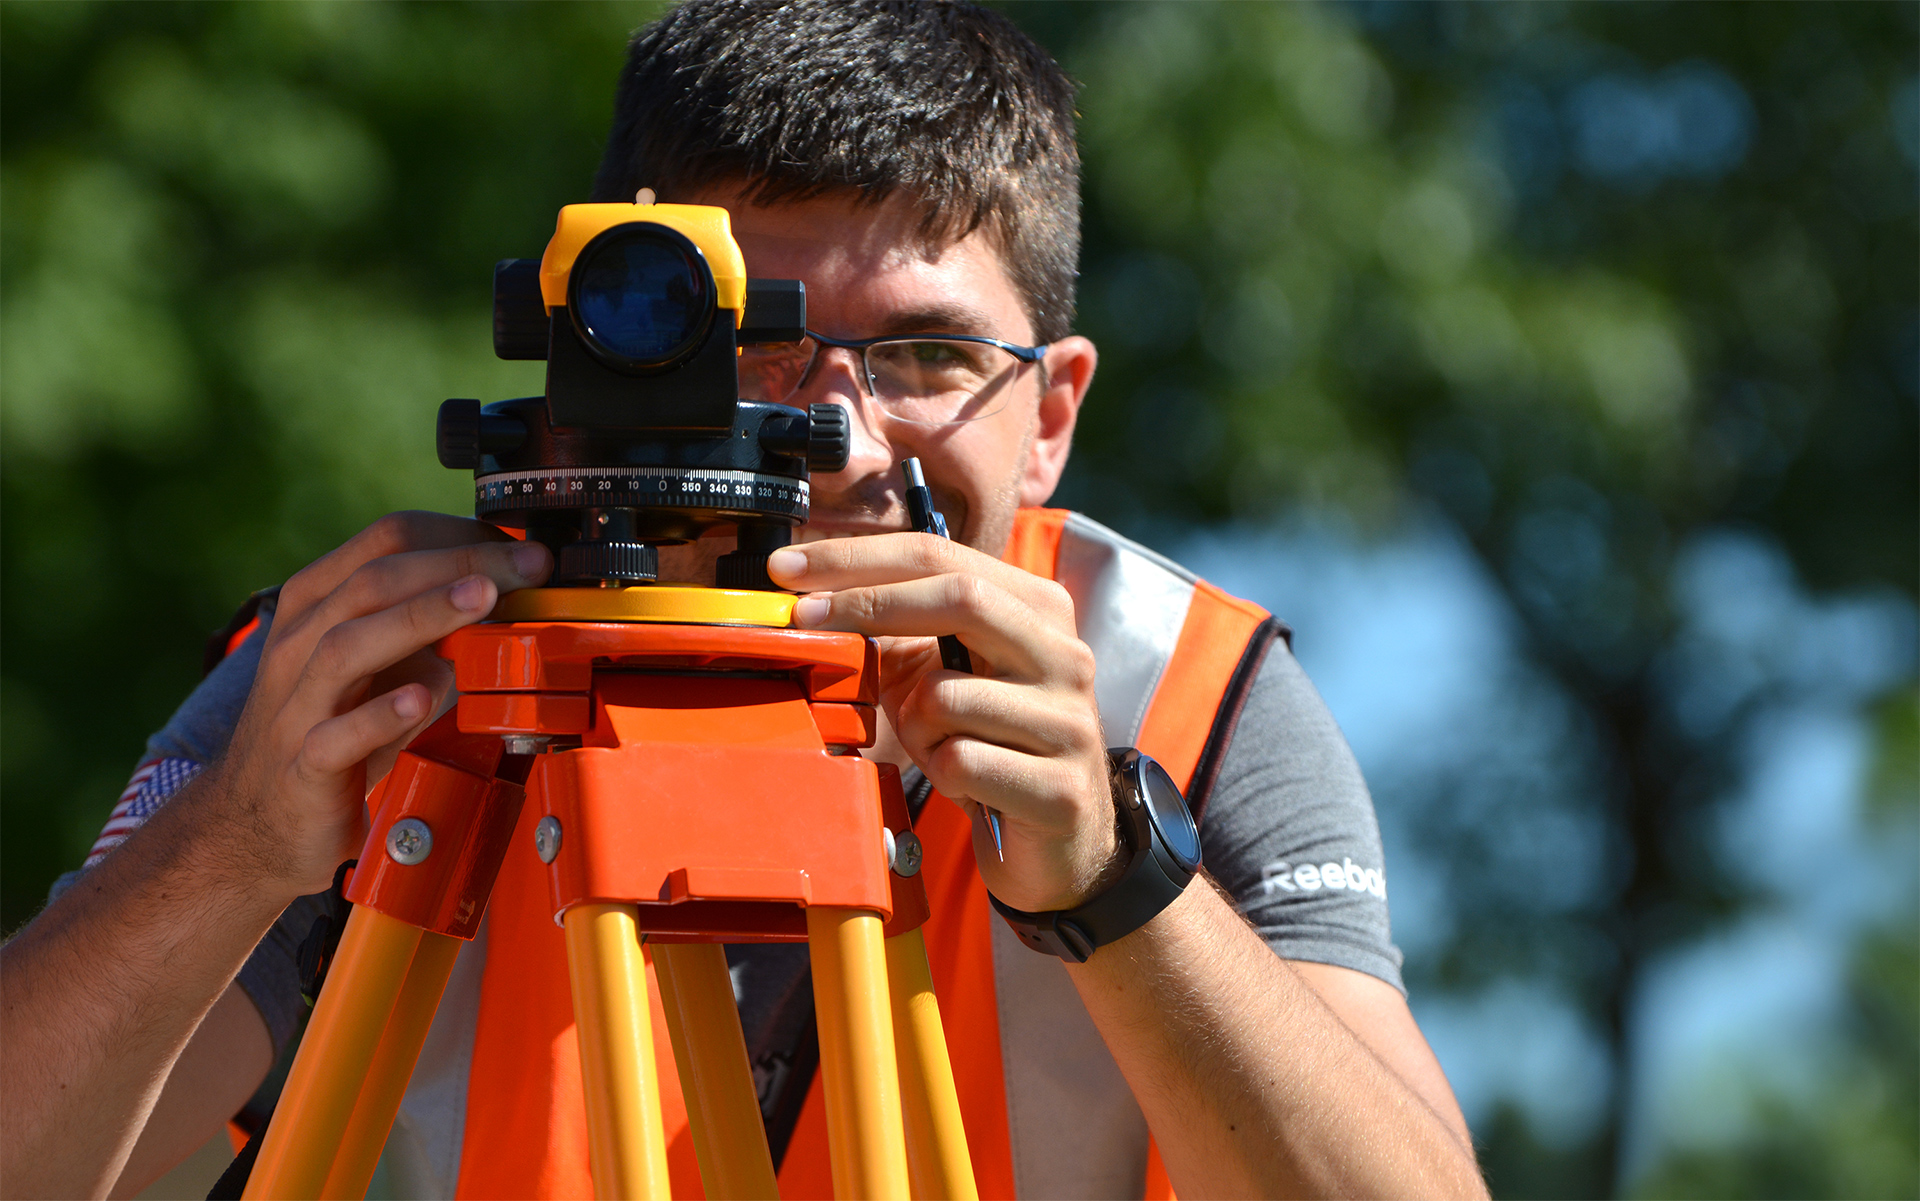 Civil Engineering student works on his surveying skills